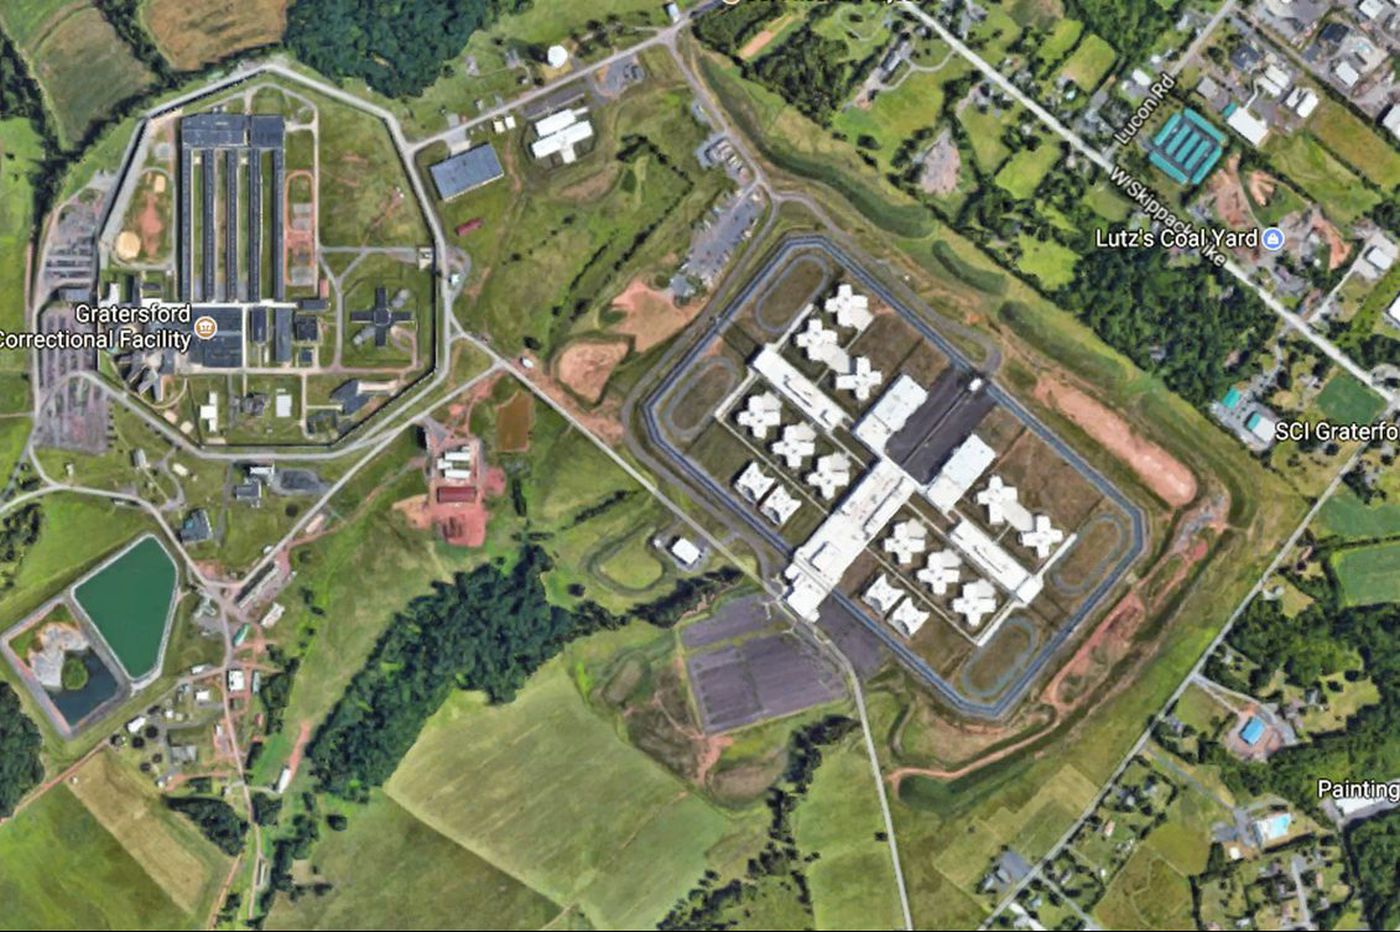 Pa.'s $400 million prison opening delayed